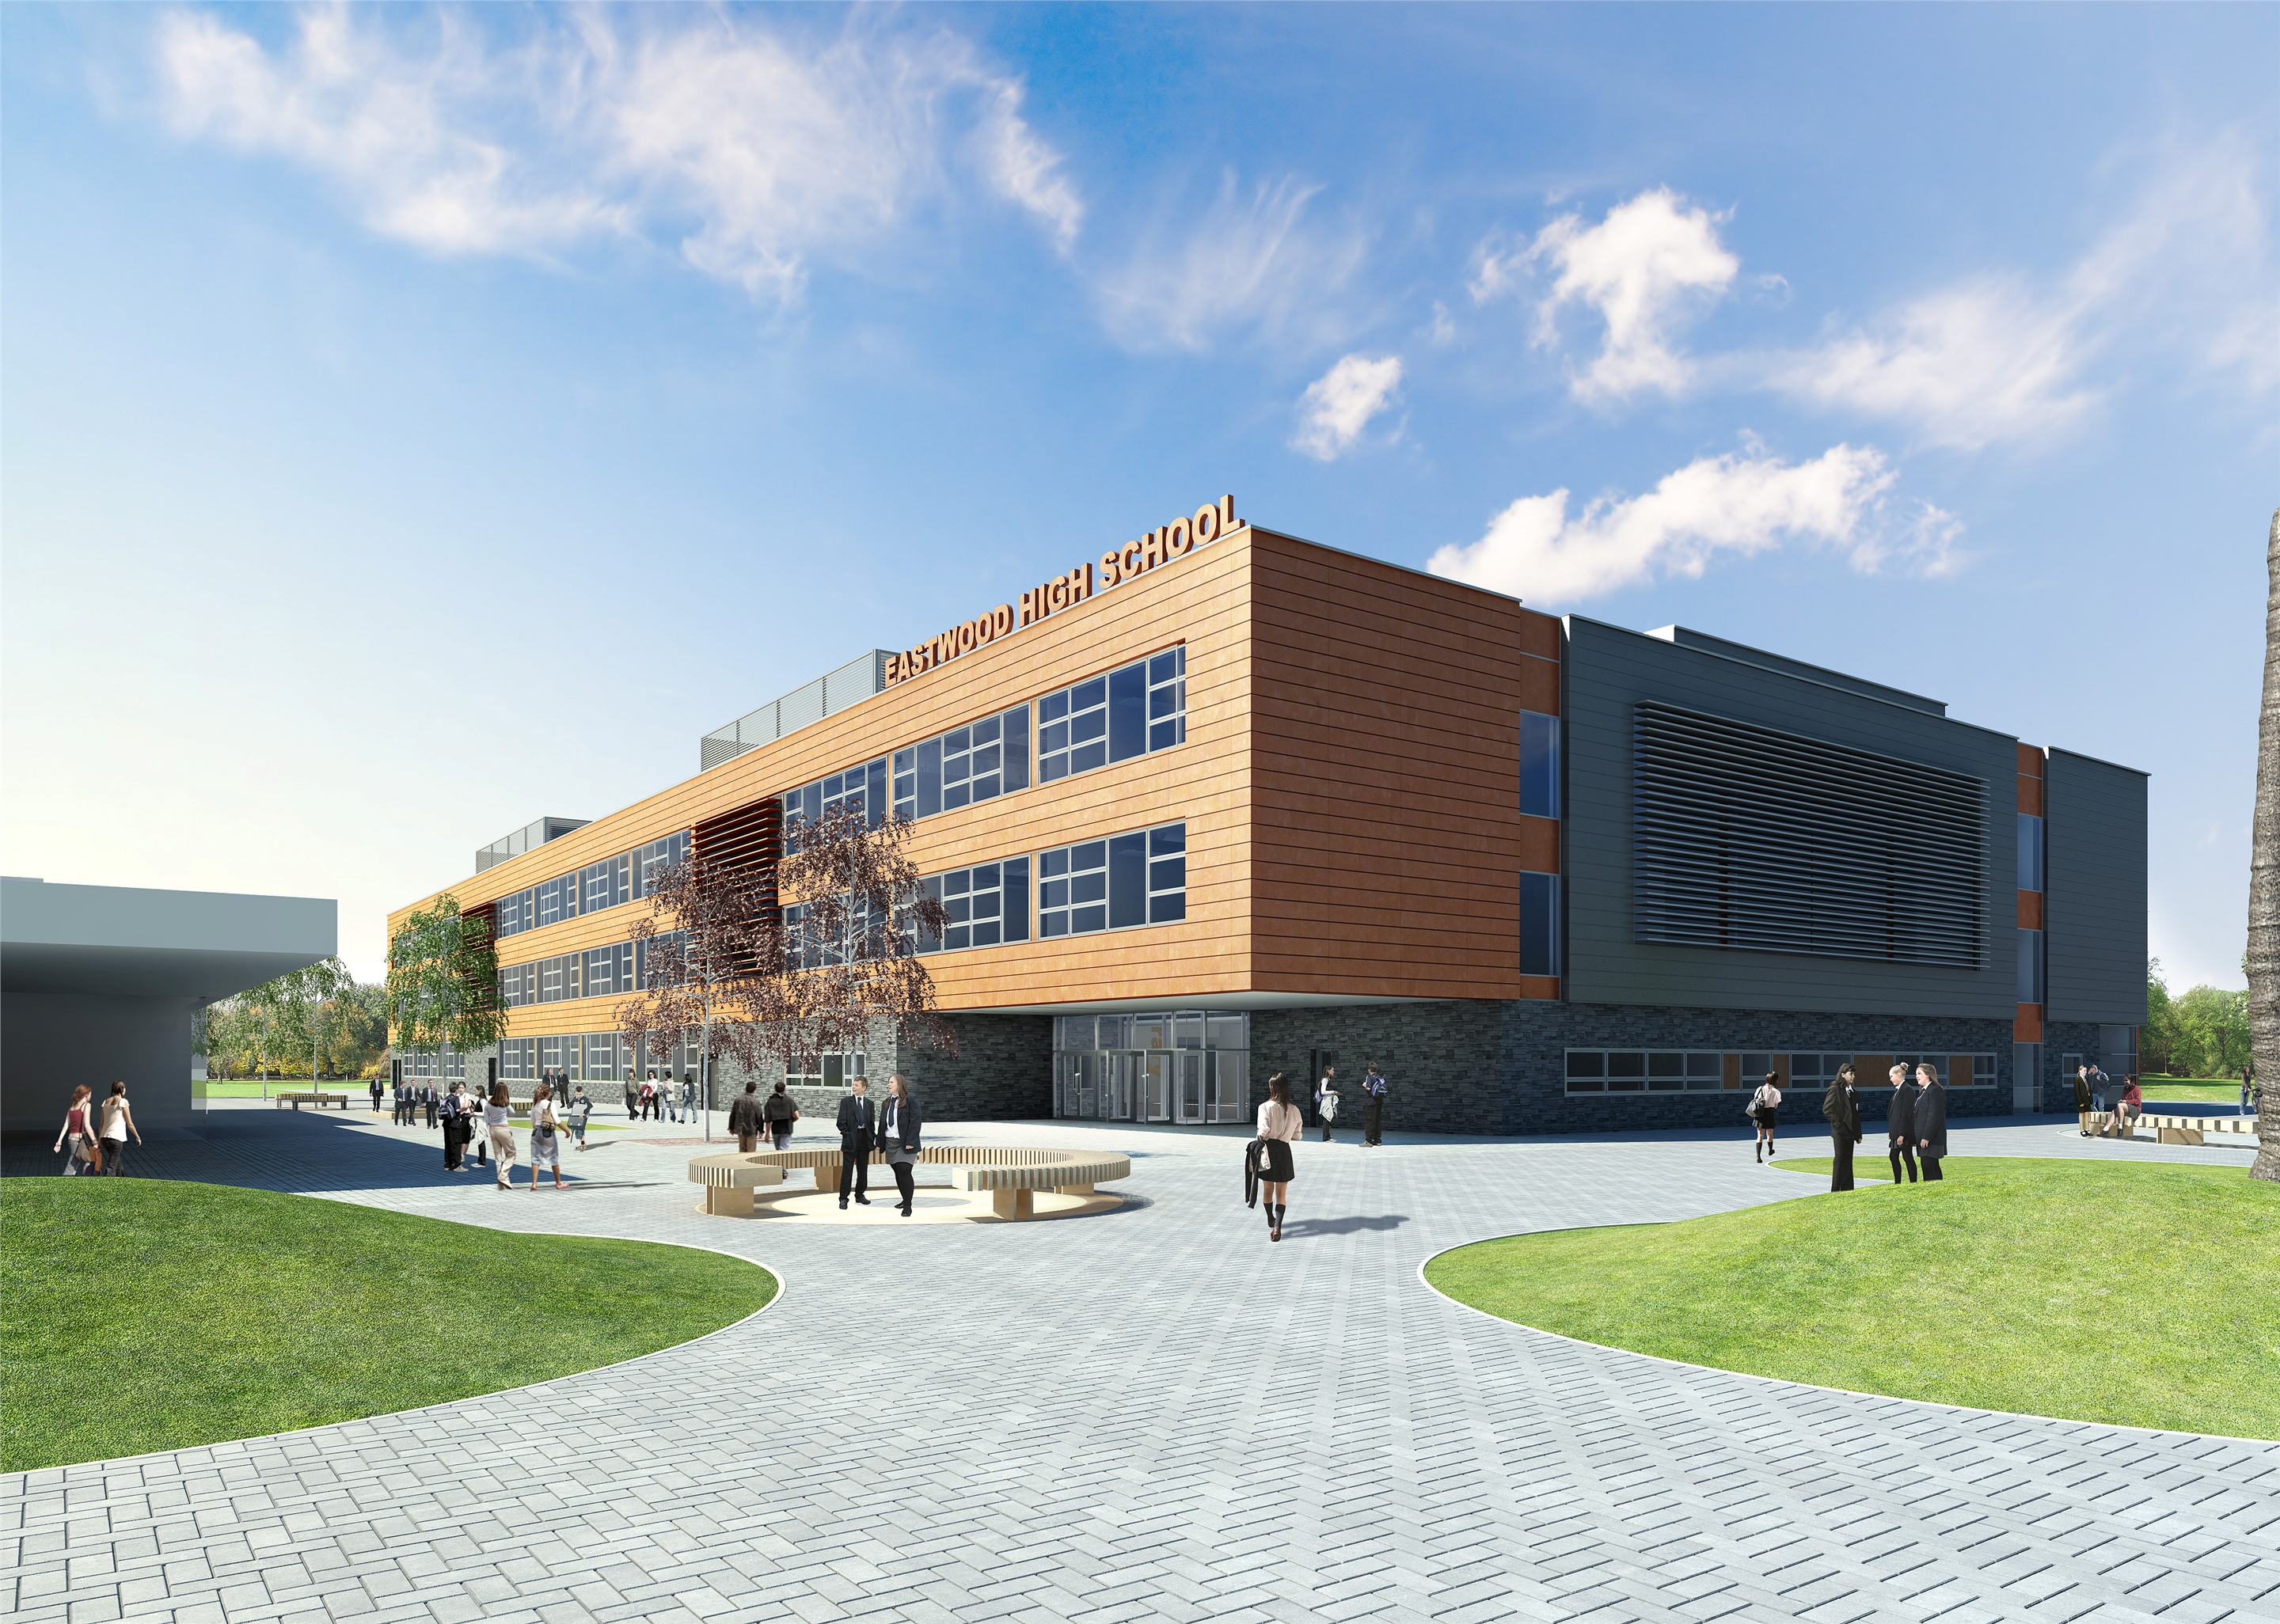 New Eastwood High School - Opening 2013